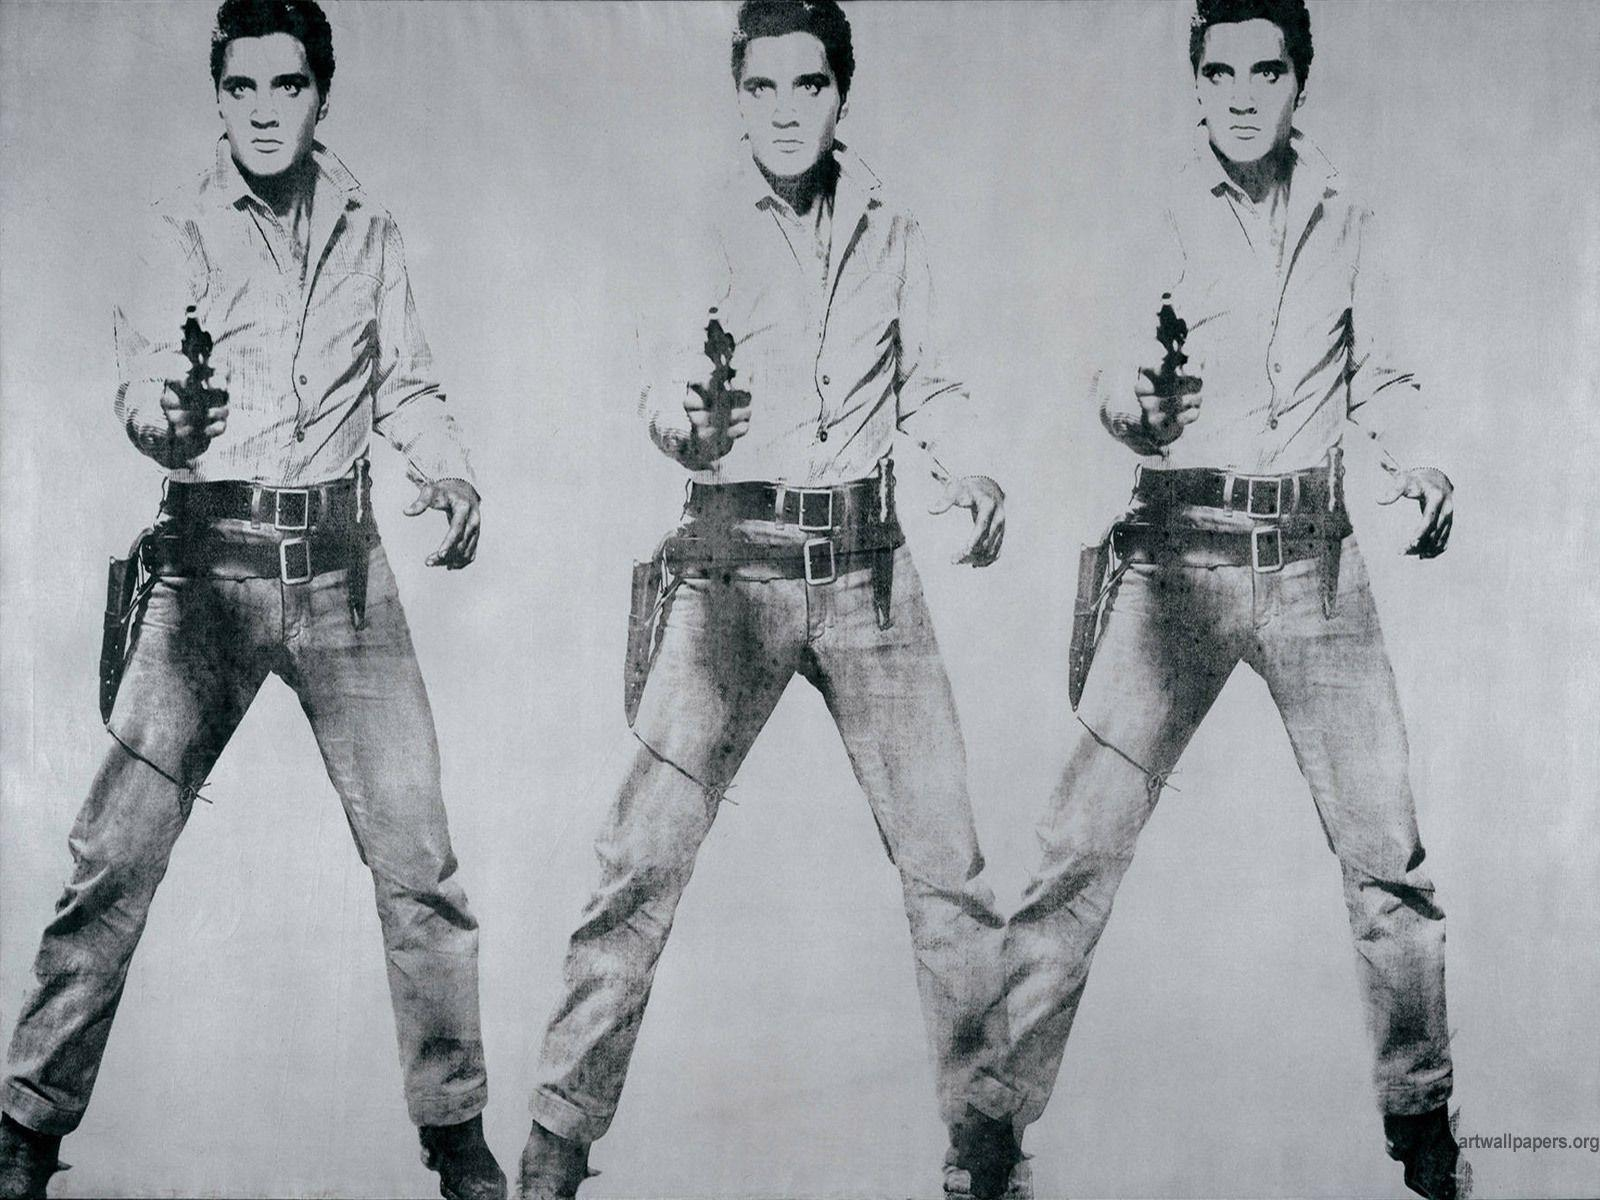 Painting Andy Warhol Cowboy wallpapers and images - wallpapers ...